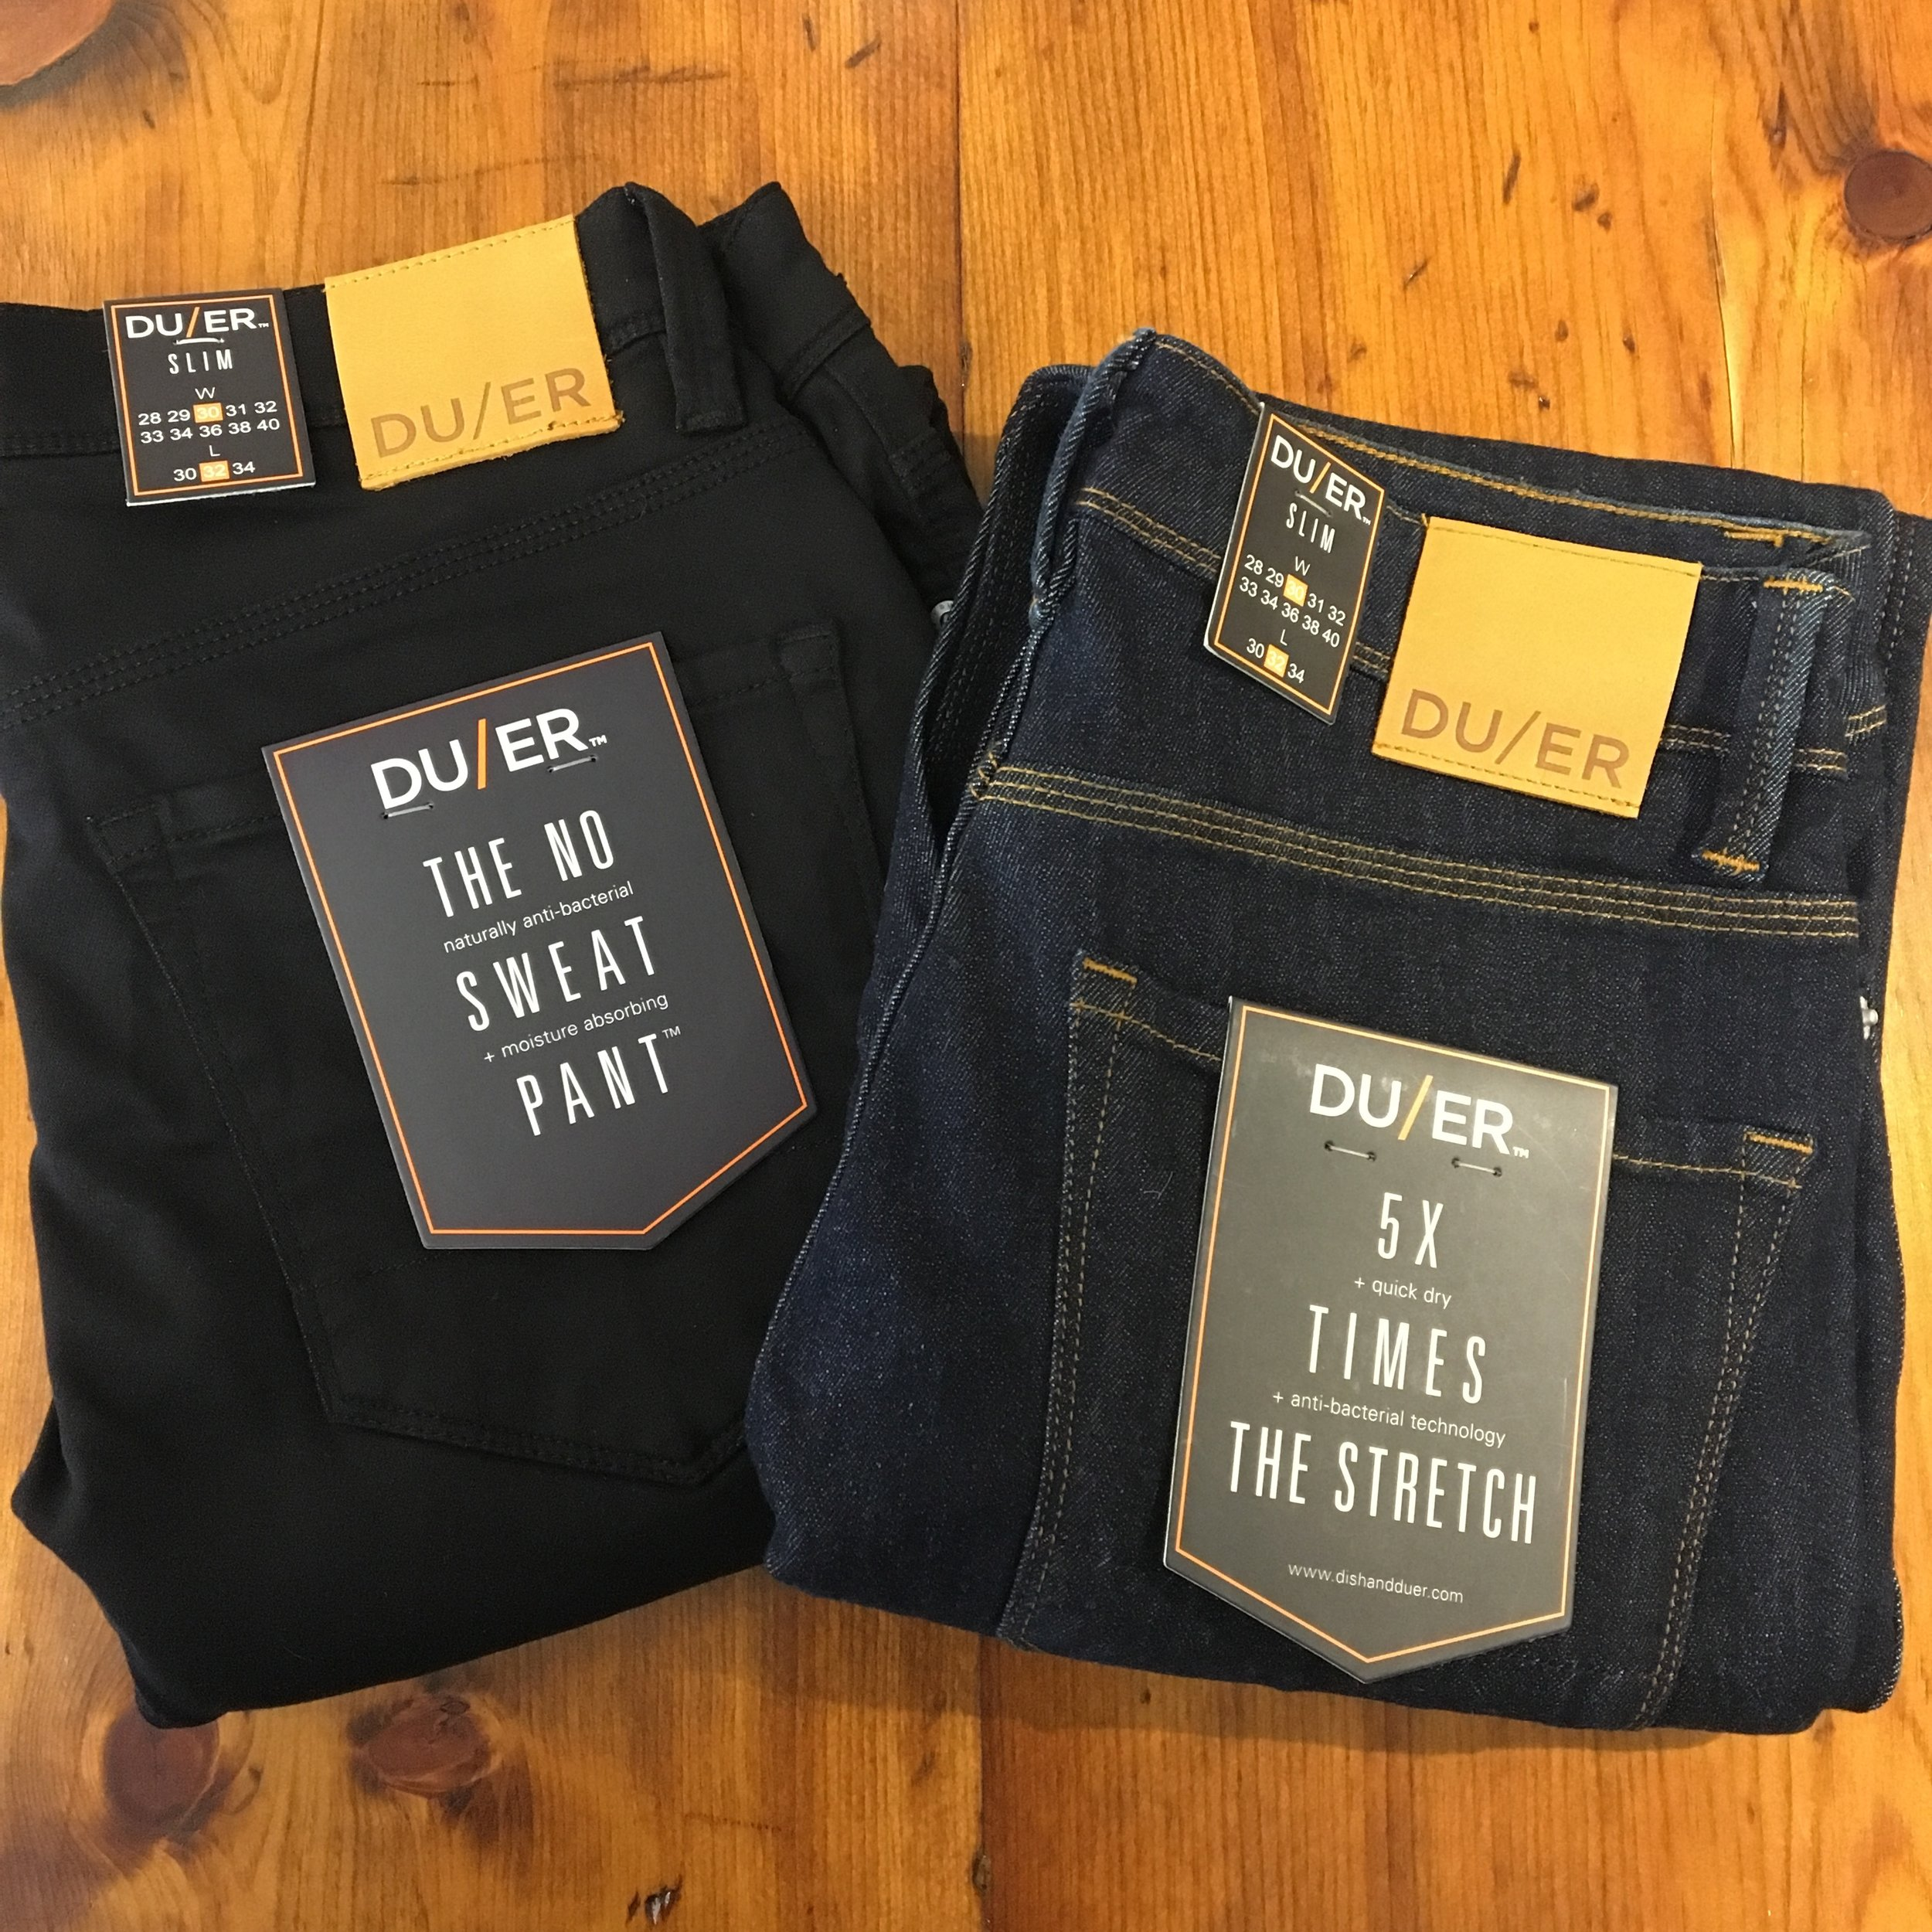 DU/ER Denim pants, No Sweat Pant in Black and L2X in Heritage Rinse